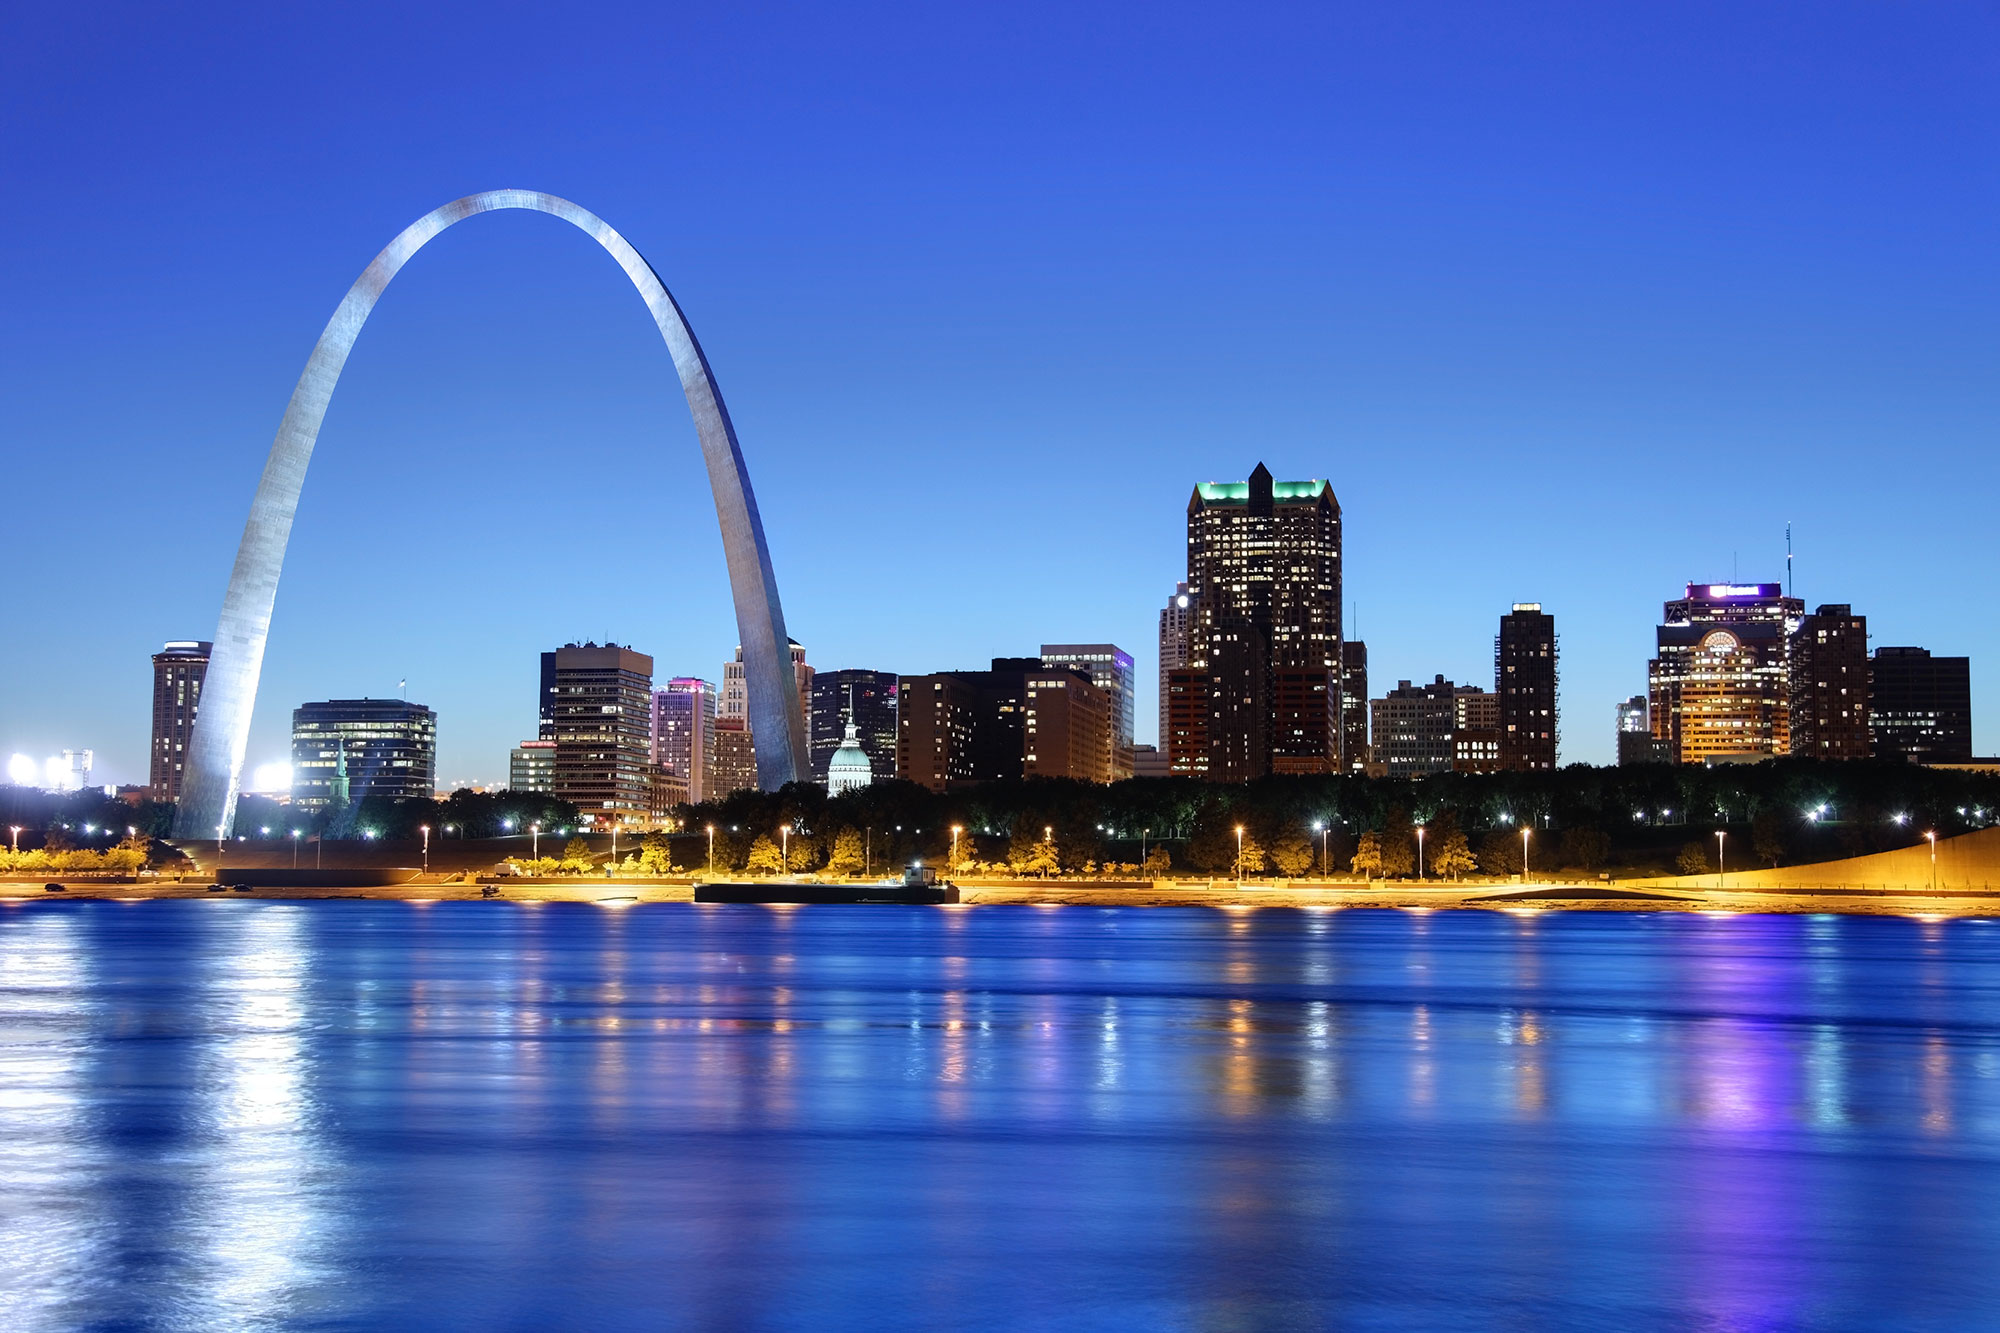 Night view of the arch in the St. Louis skyline